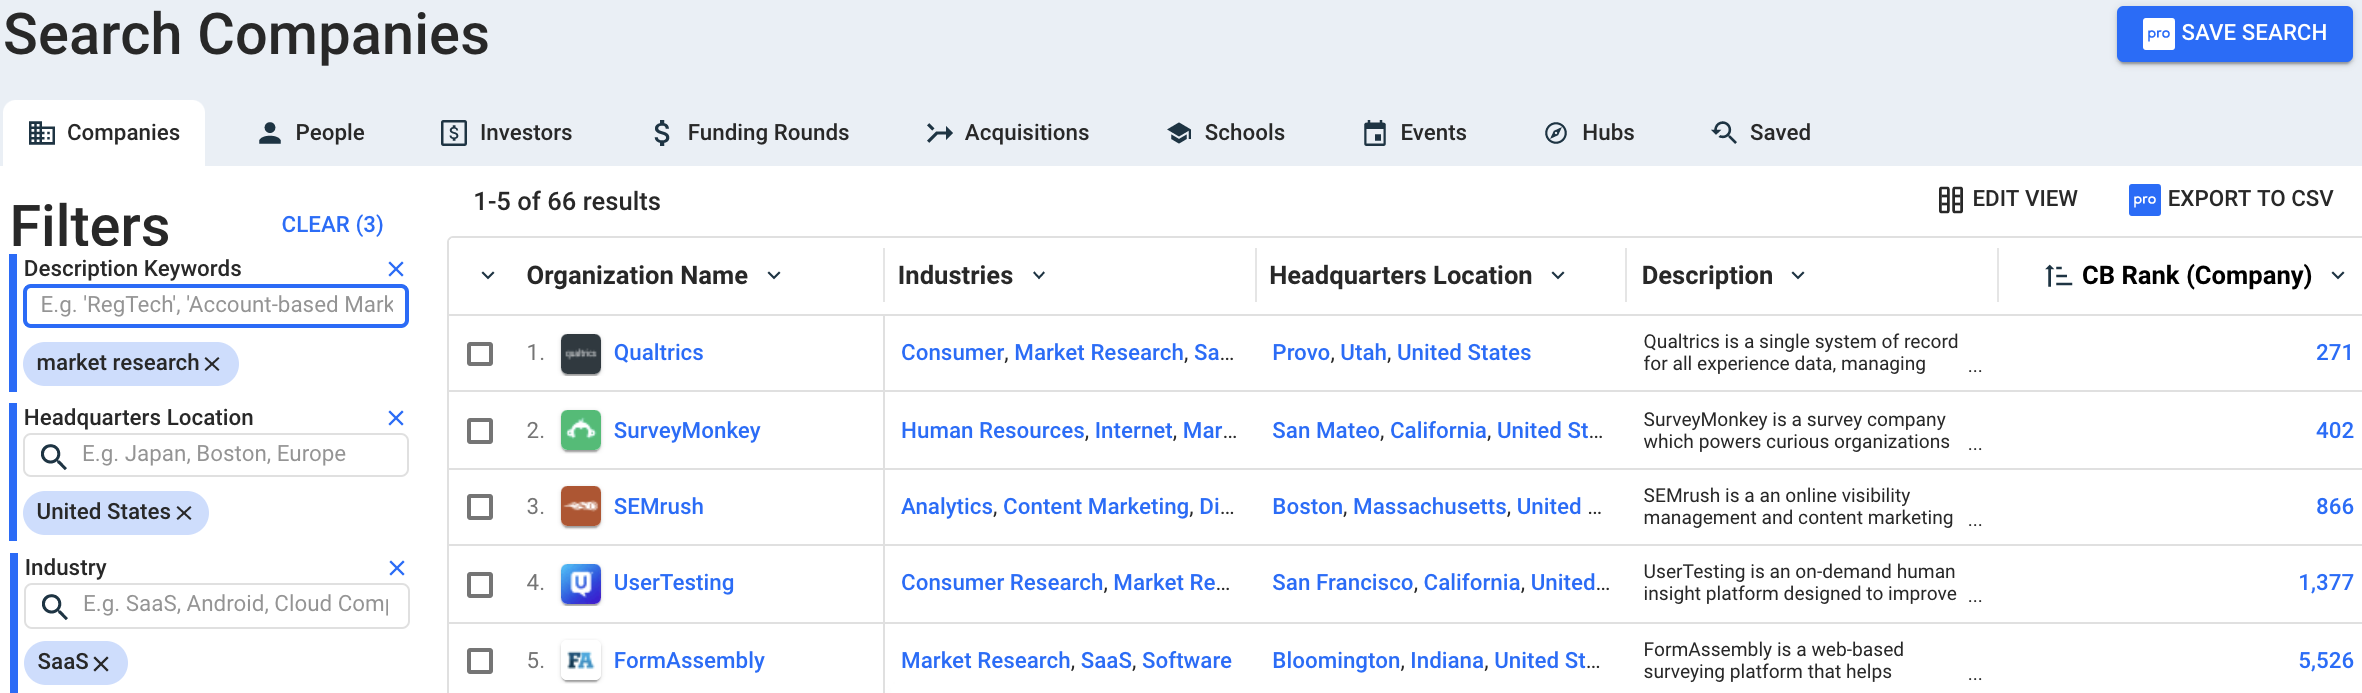 Crunchbase Companies Search Top Tool for Market Research